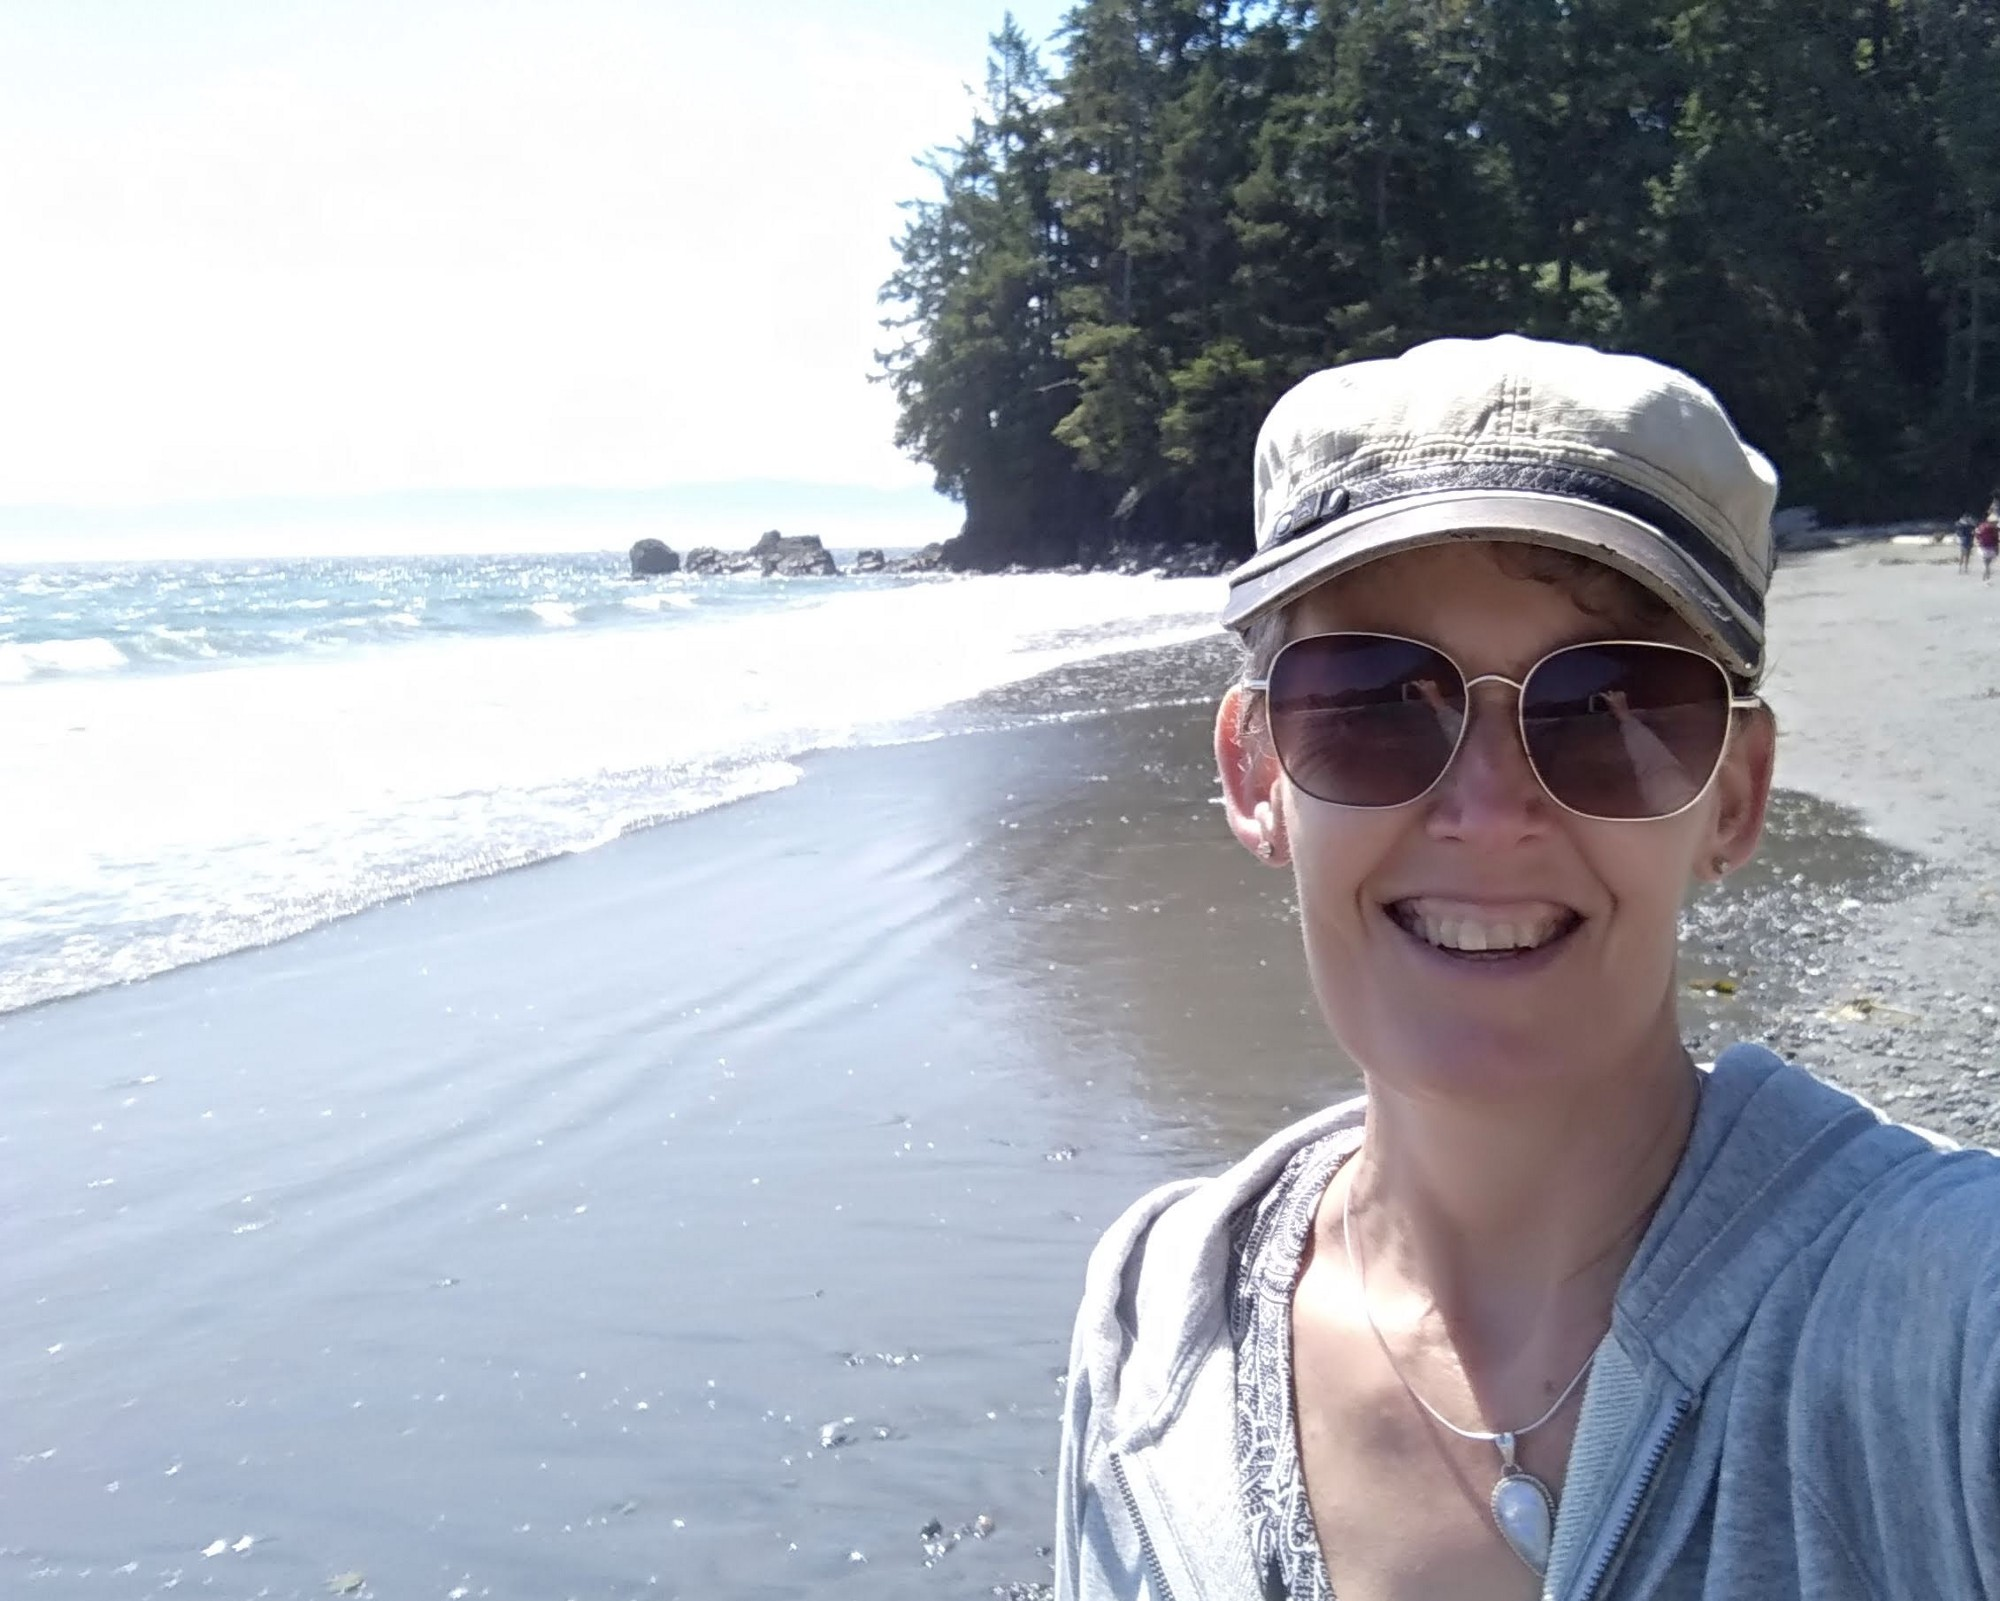 Photo of author, Gill McCulloch standing on a sandy beach in Sooke, BC, Canada. The sun is shining on waves with trees in the background.